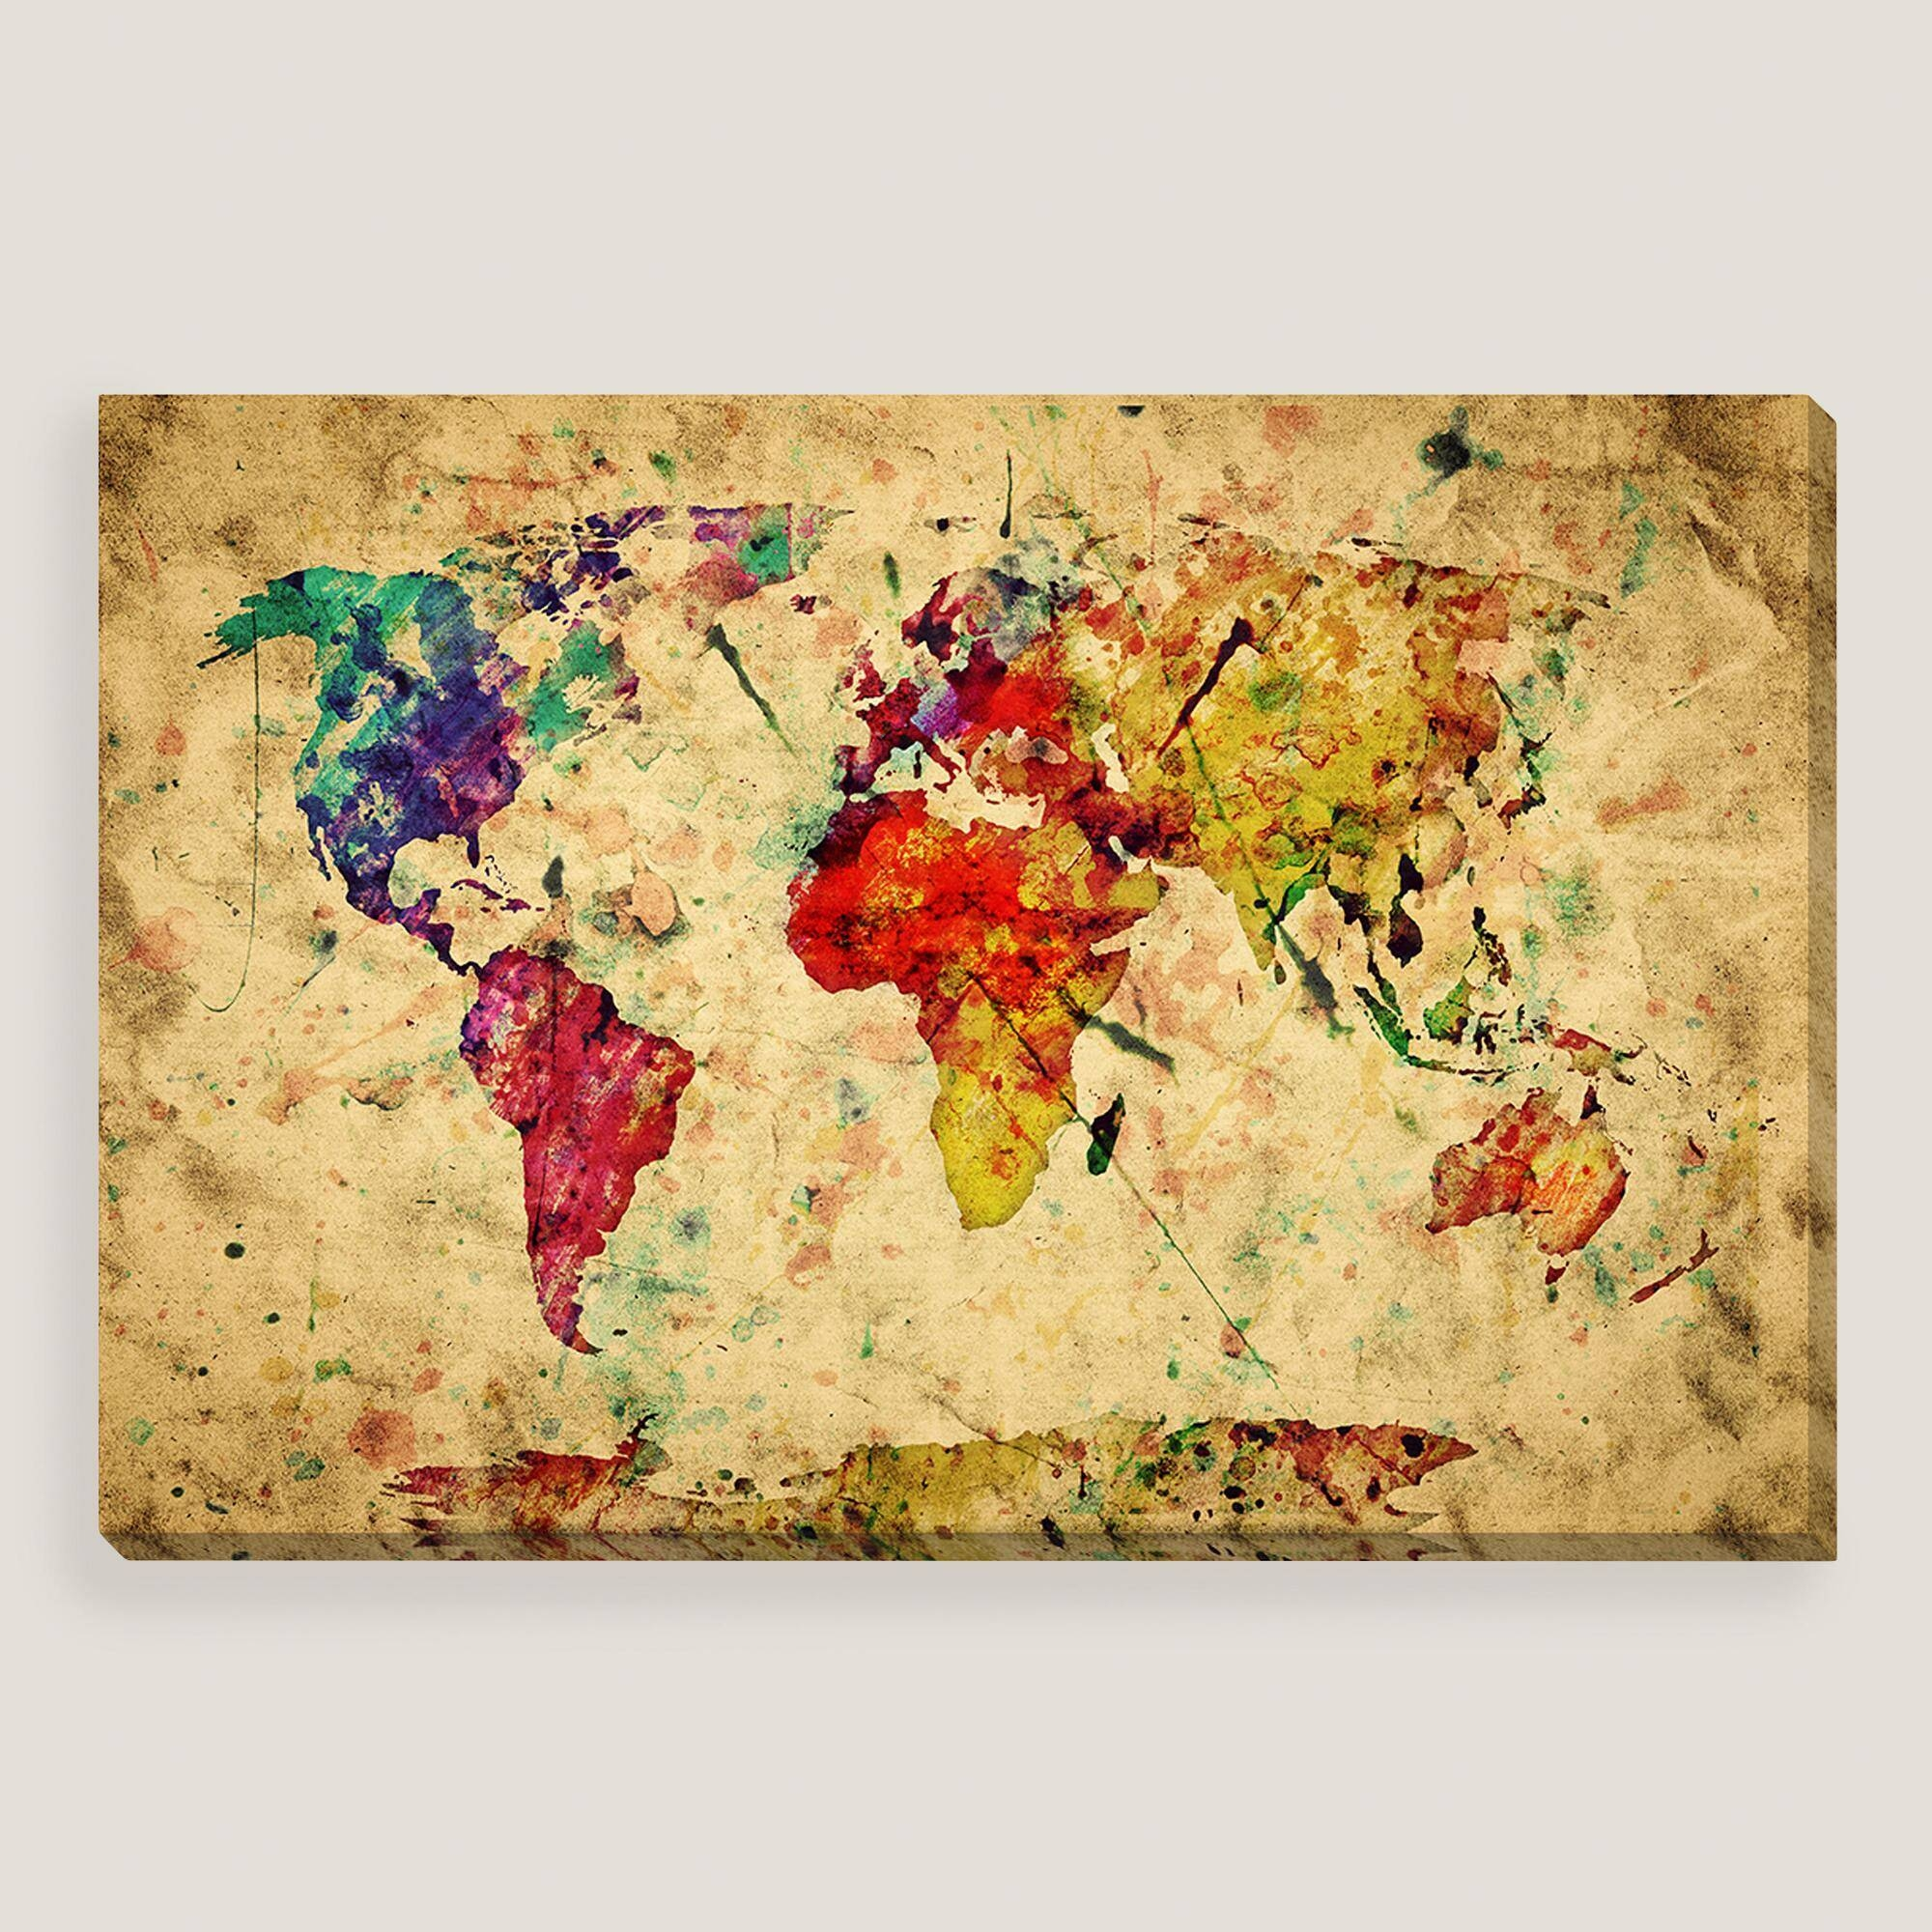 Wall Art Design Ideas: Modern Painting Vintage World Map Wall Art Within Best And Newest Map Wall Art Maps (View 14 of 20)